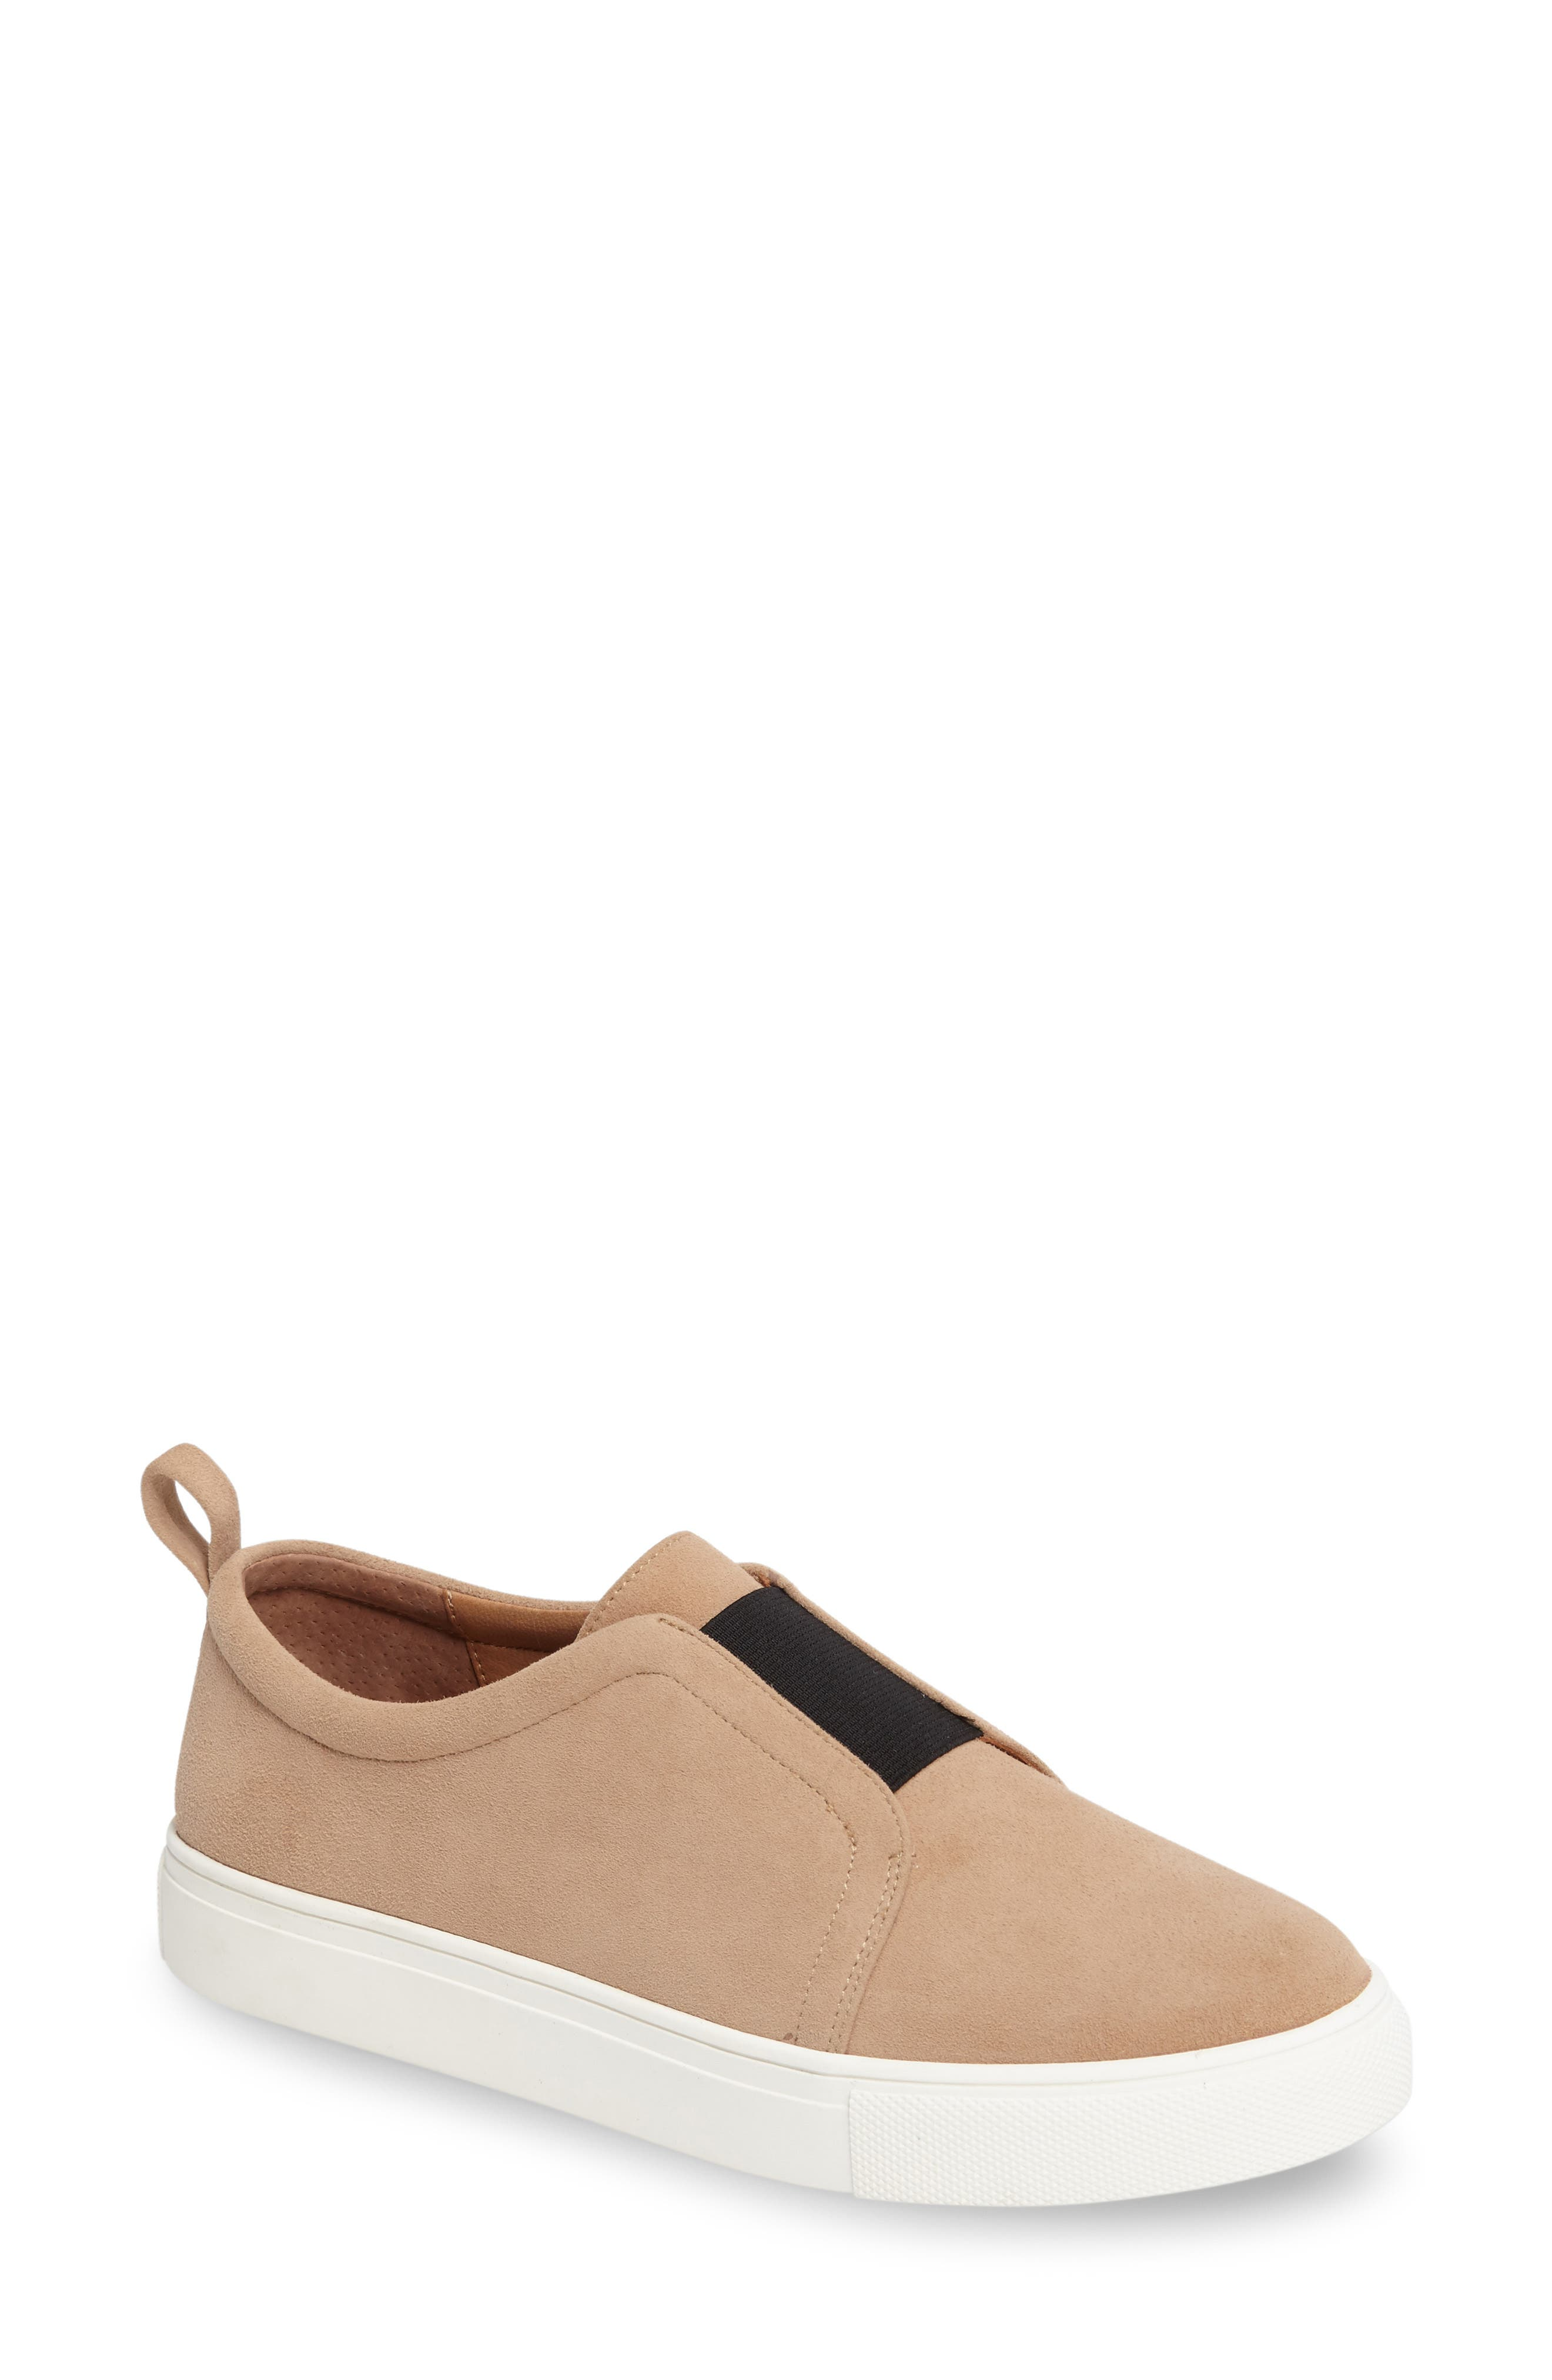 Alternate Image 1 Selected - Linea Paolo Kyle Slip-On Sneaker (Women)